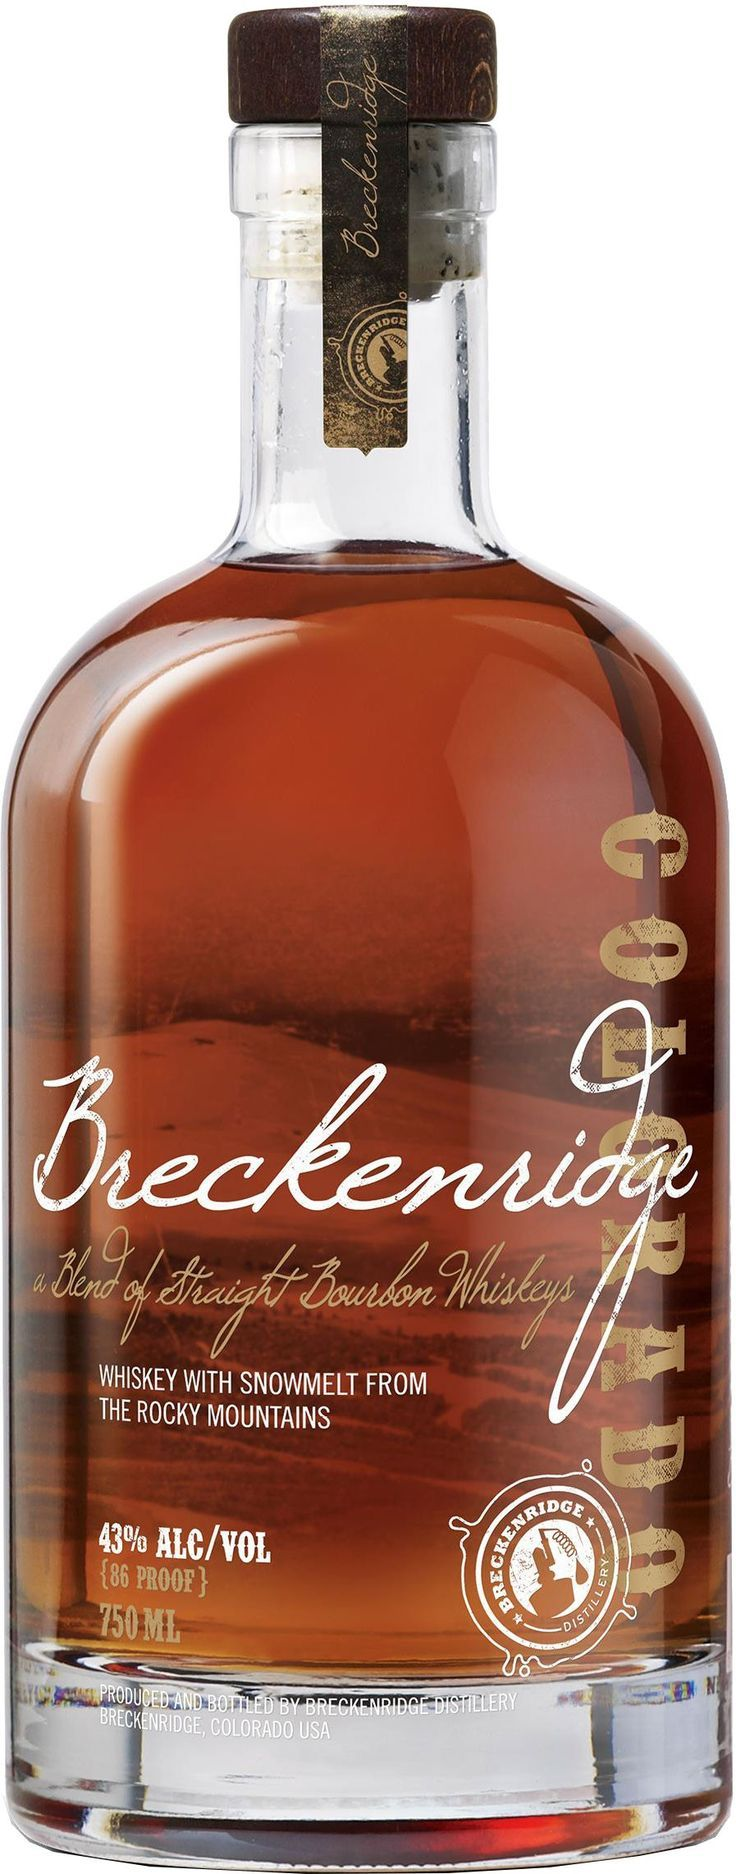 This bourbon scored 1 point higher than Pappy Van Winkle's 23 Year Old Bourbon at the Ultimate Spirits Challenge in 2012.